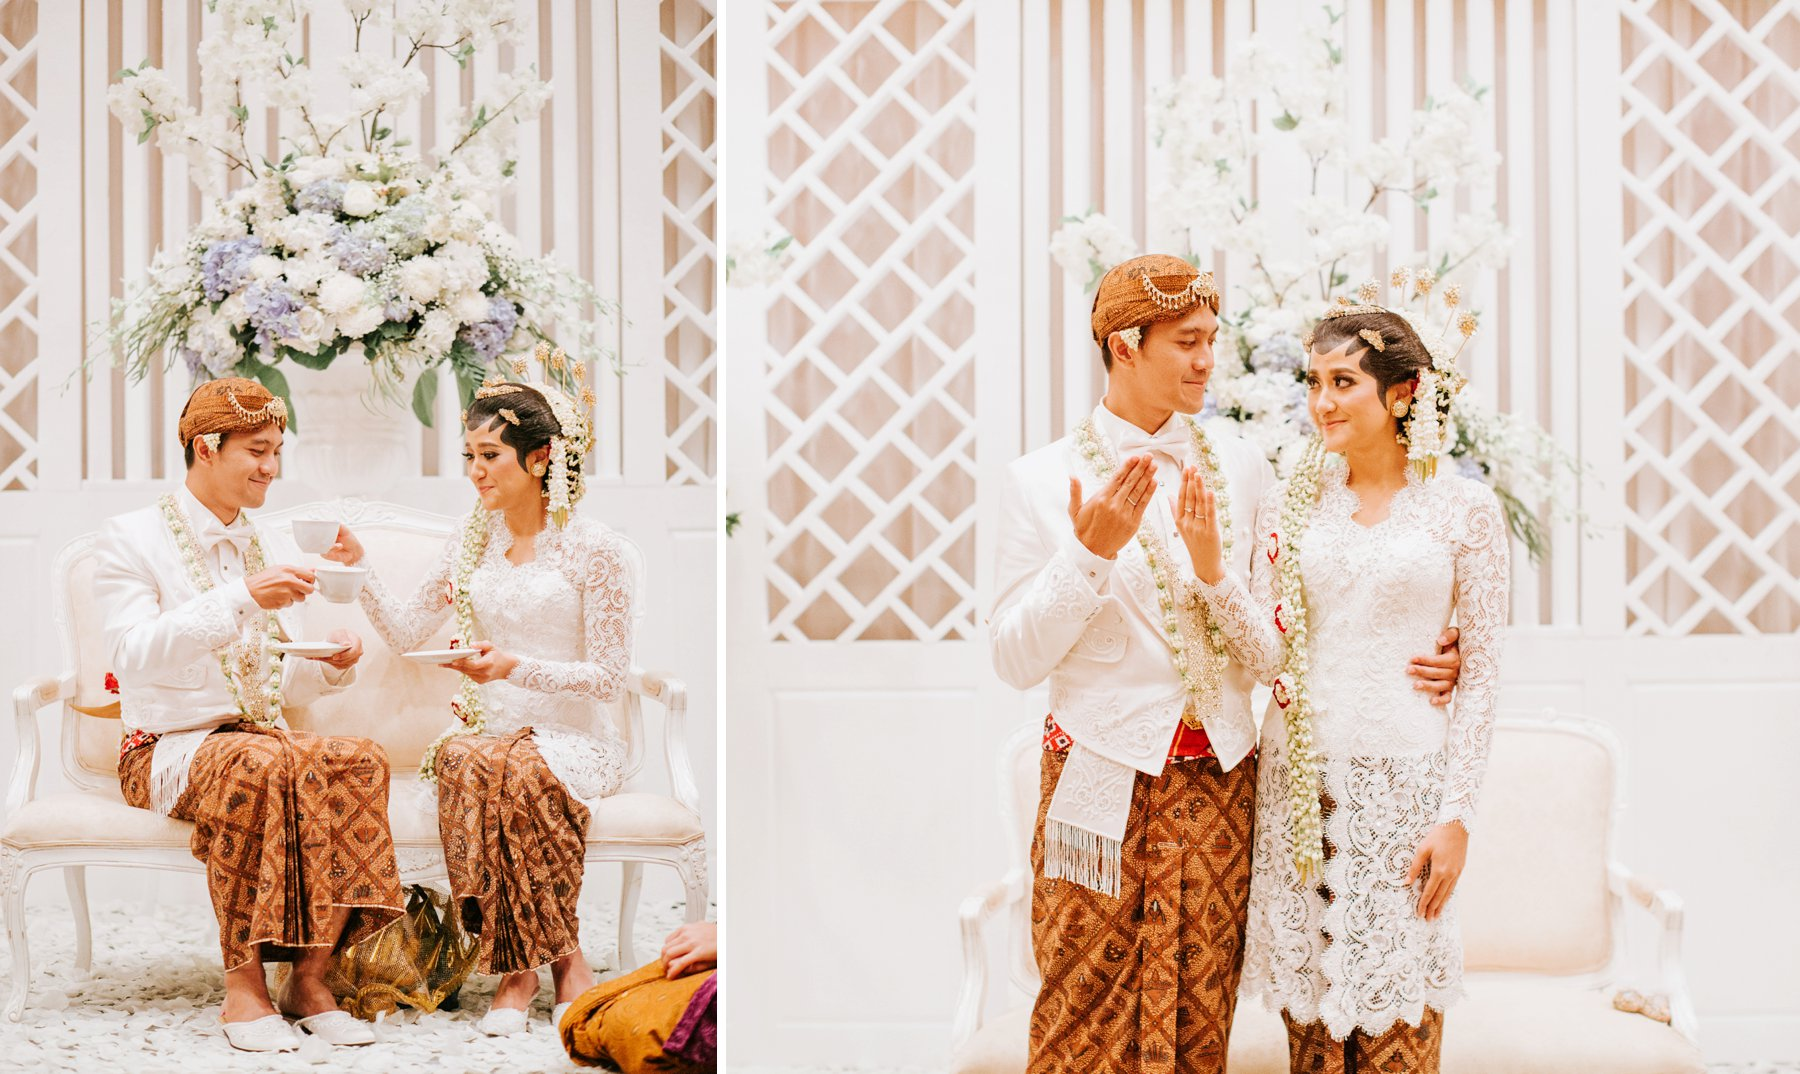 Intercontinental_bali_wedding_0023